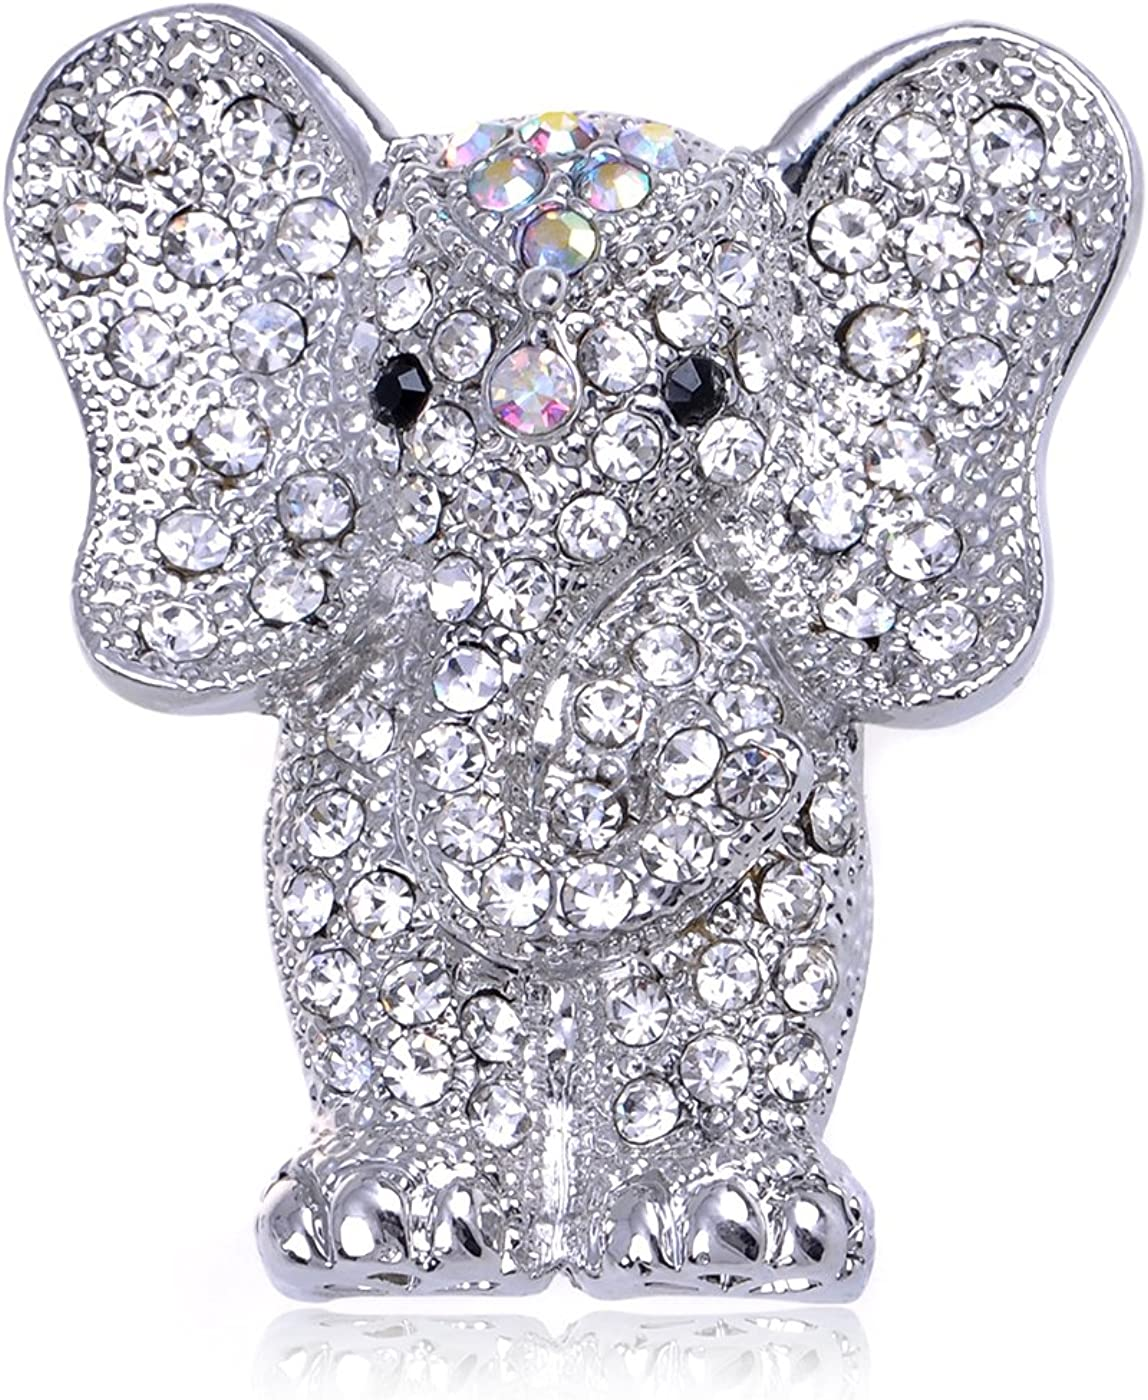 Alilang Indian African King Award Elephant Department store An Clear Rhinestone Crystal